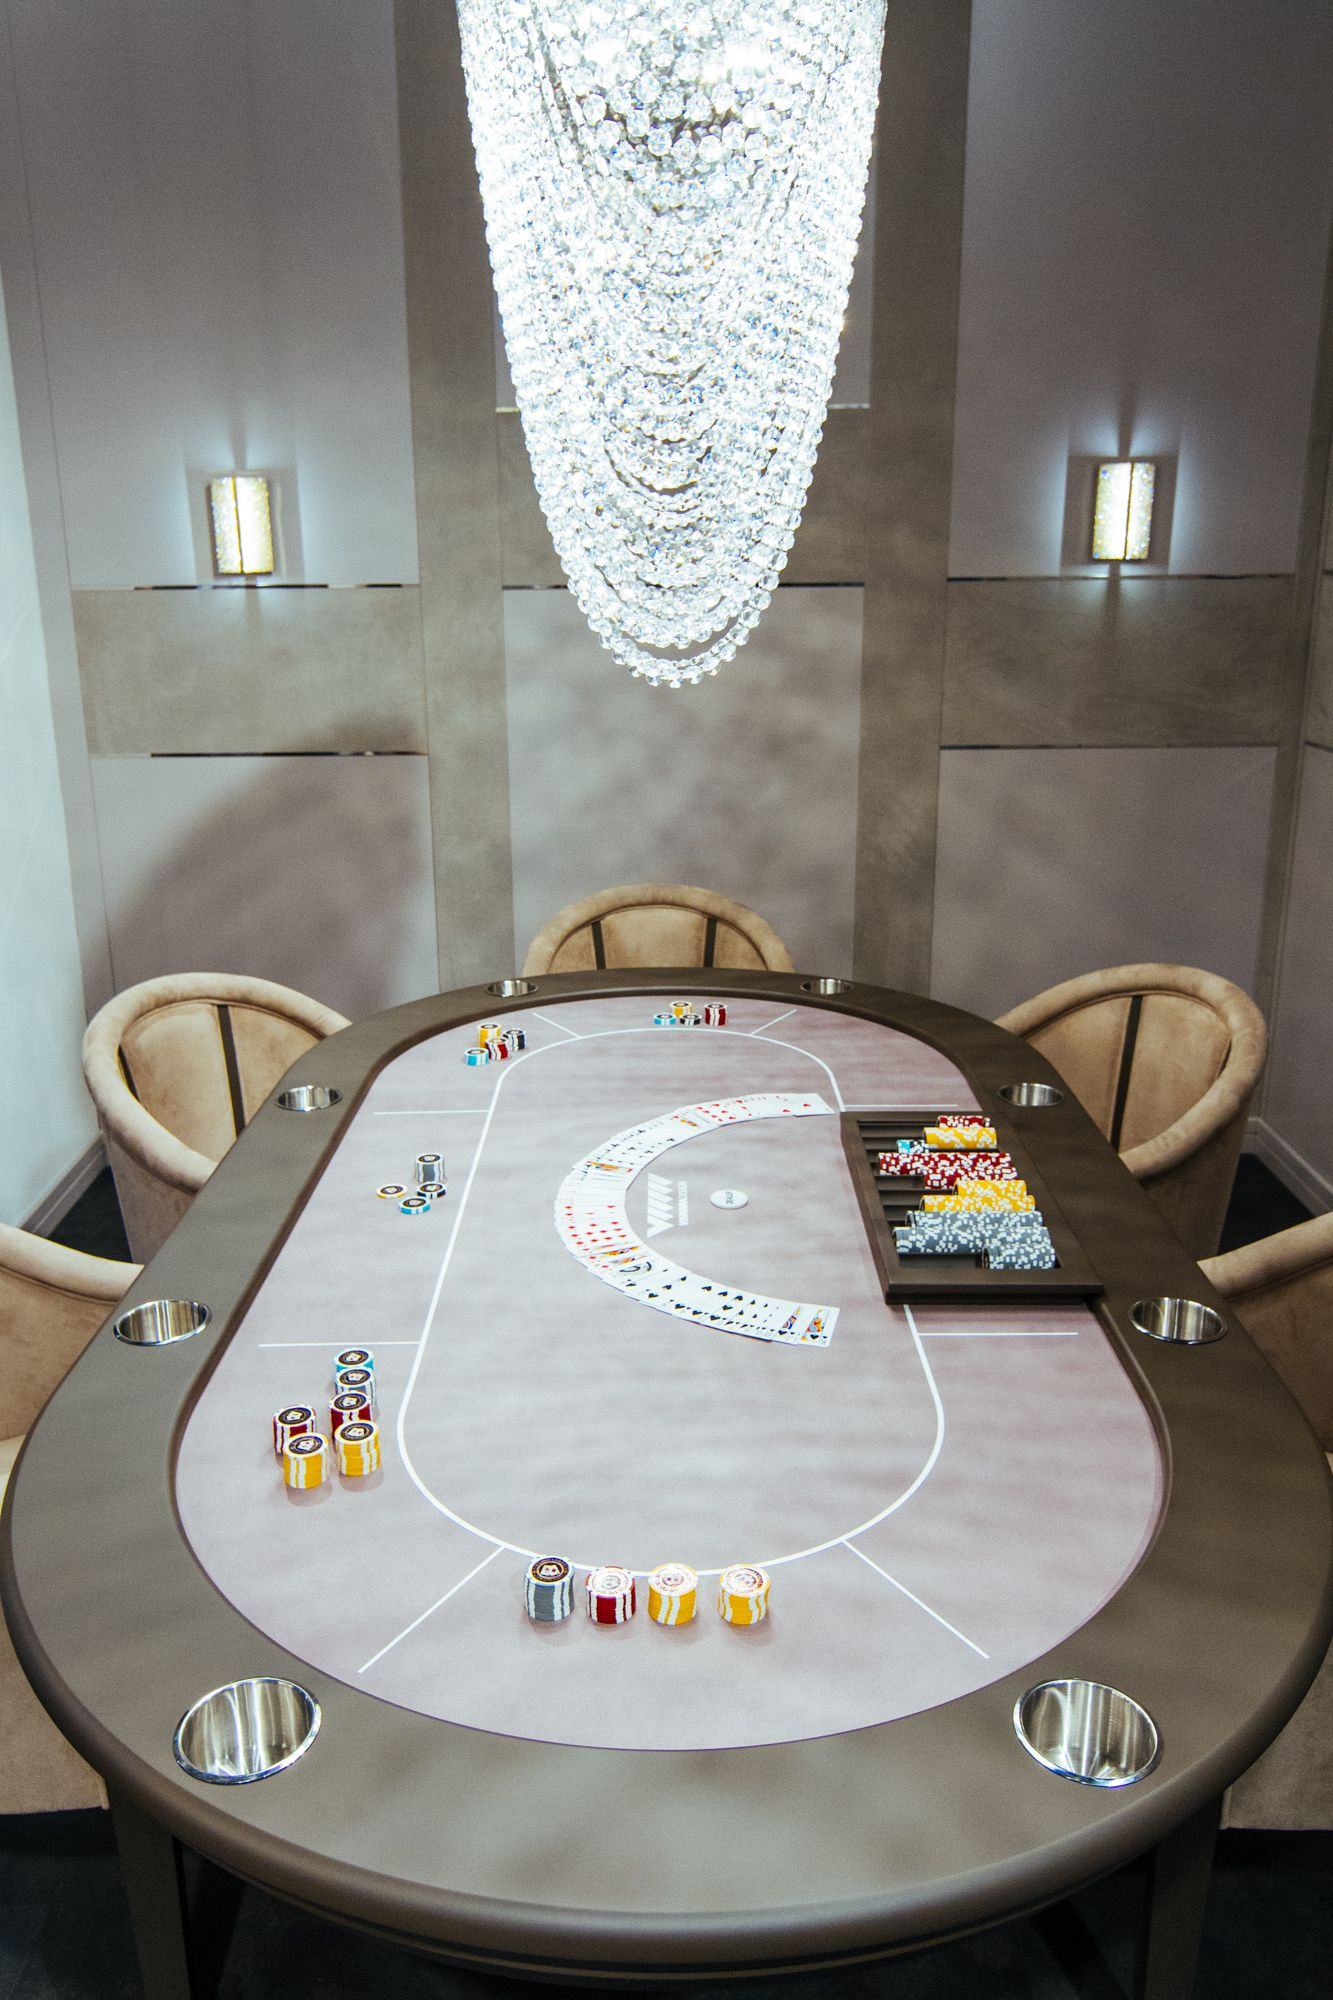 Playing Poker Has Never Been So Classy With Vismara Design